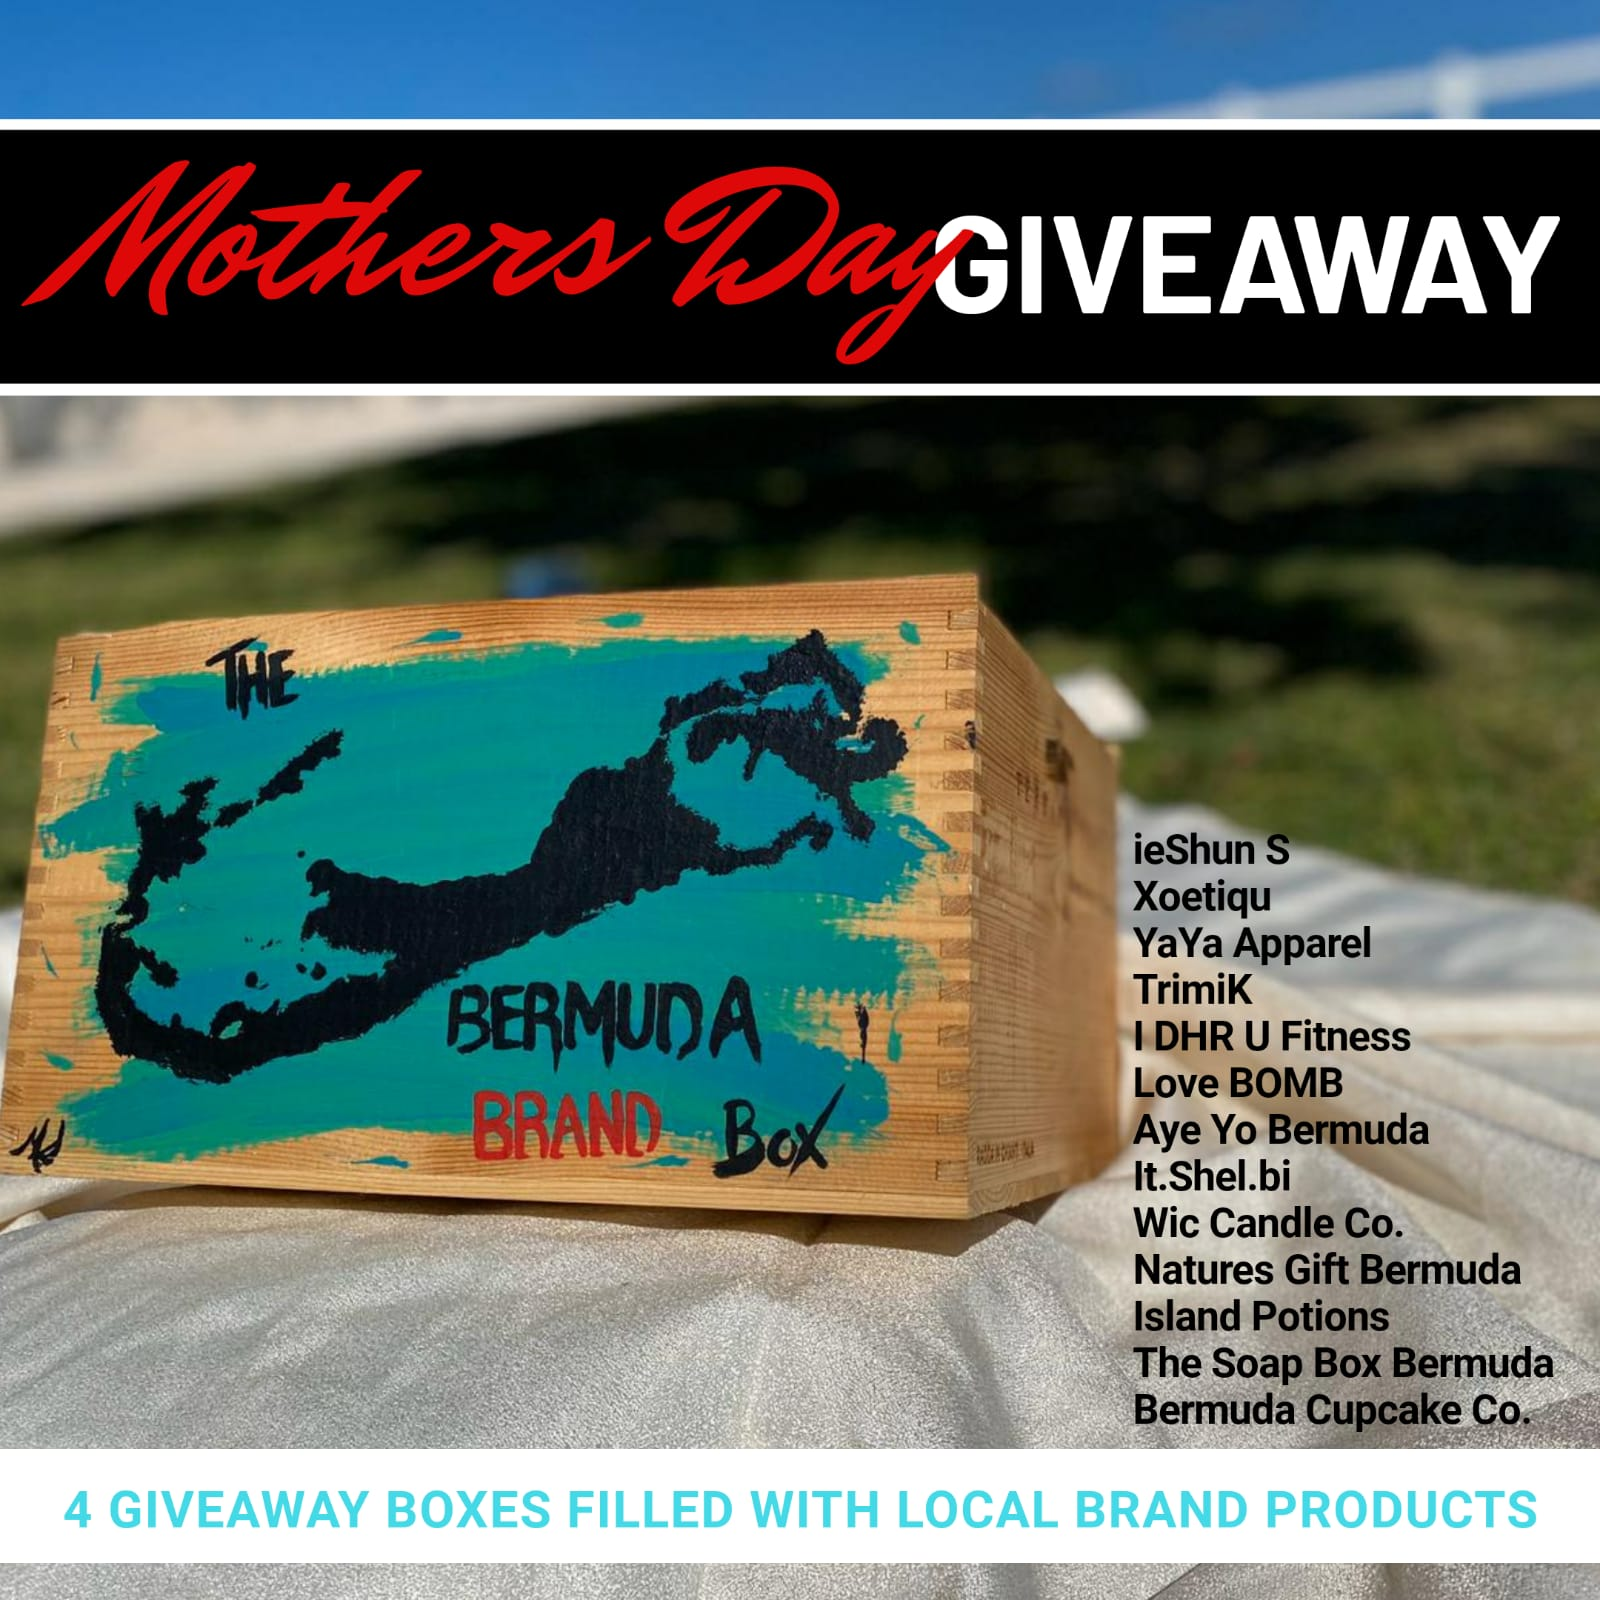 Bermuda Brand Box Mother's Day Giveaway